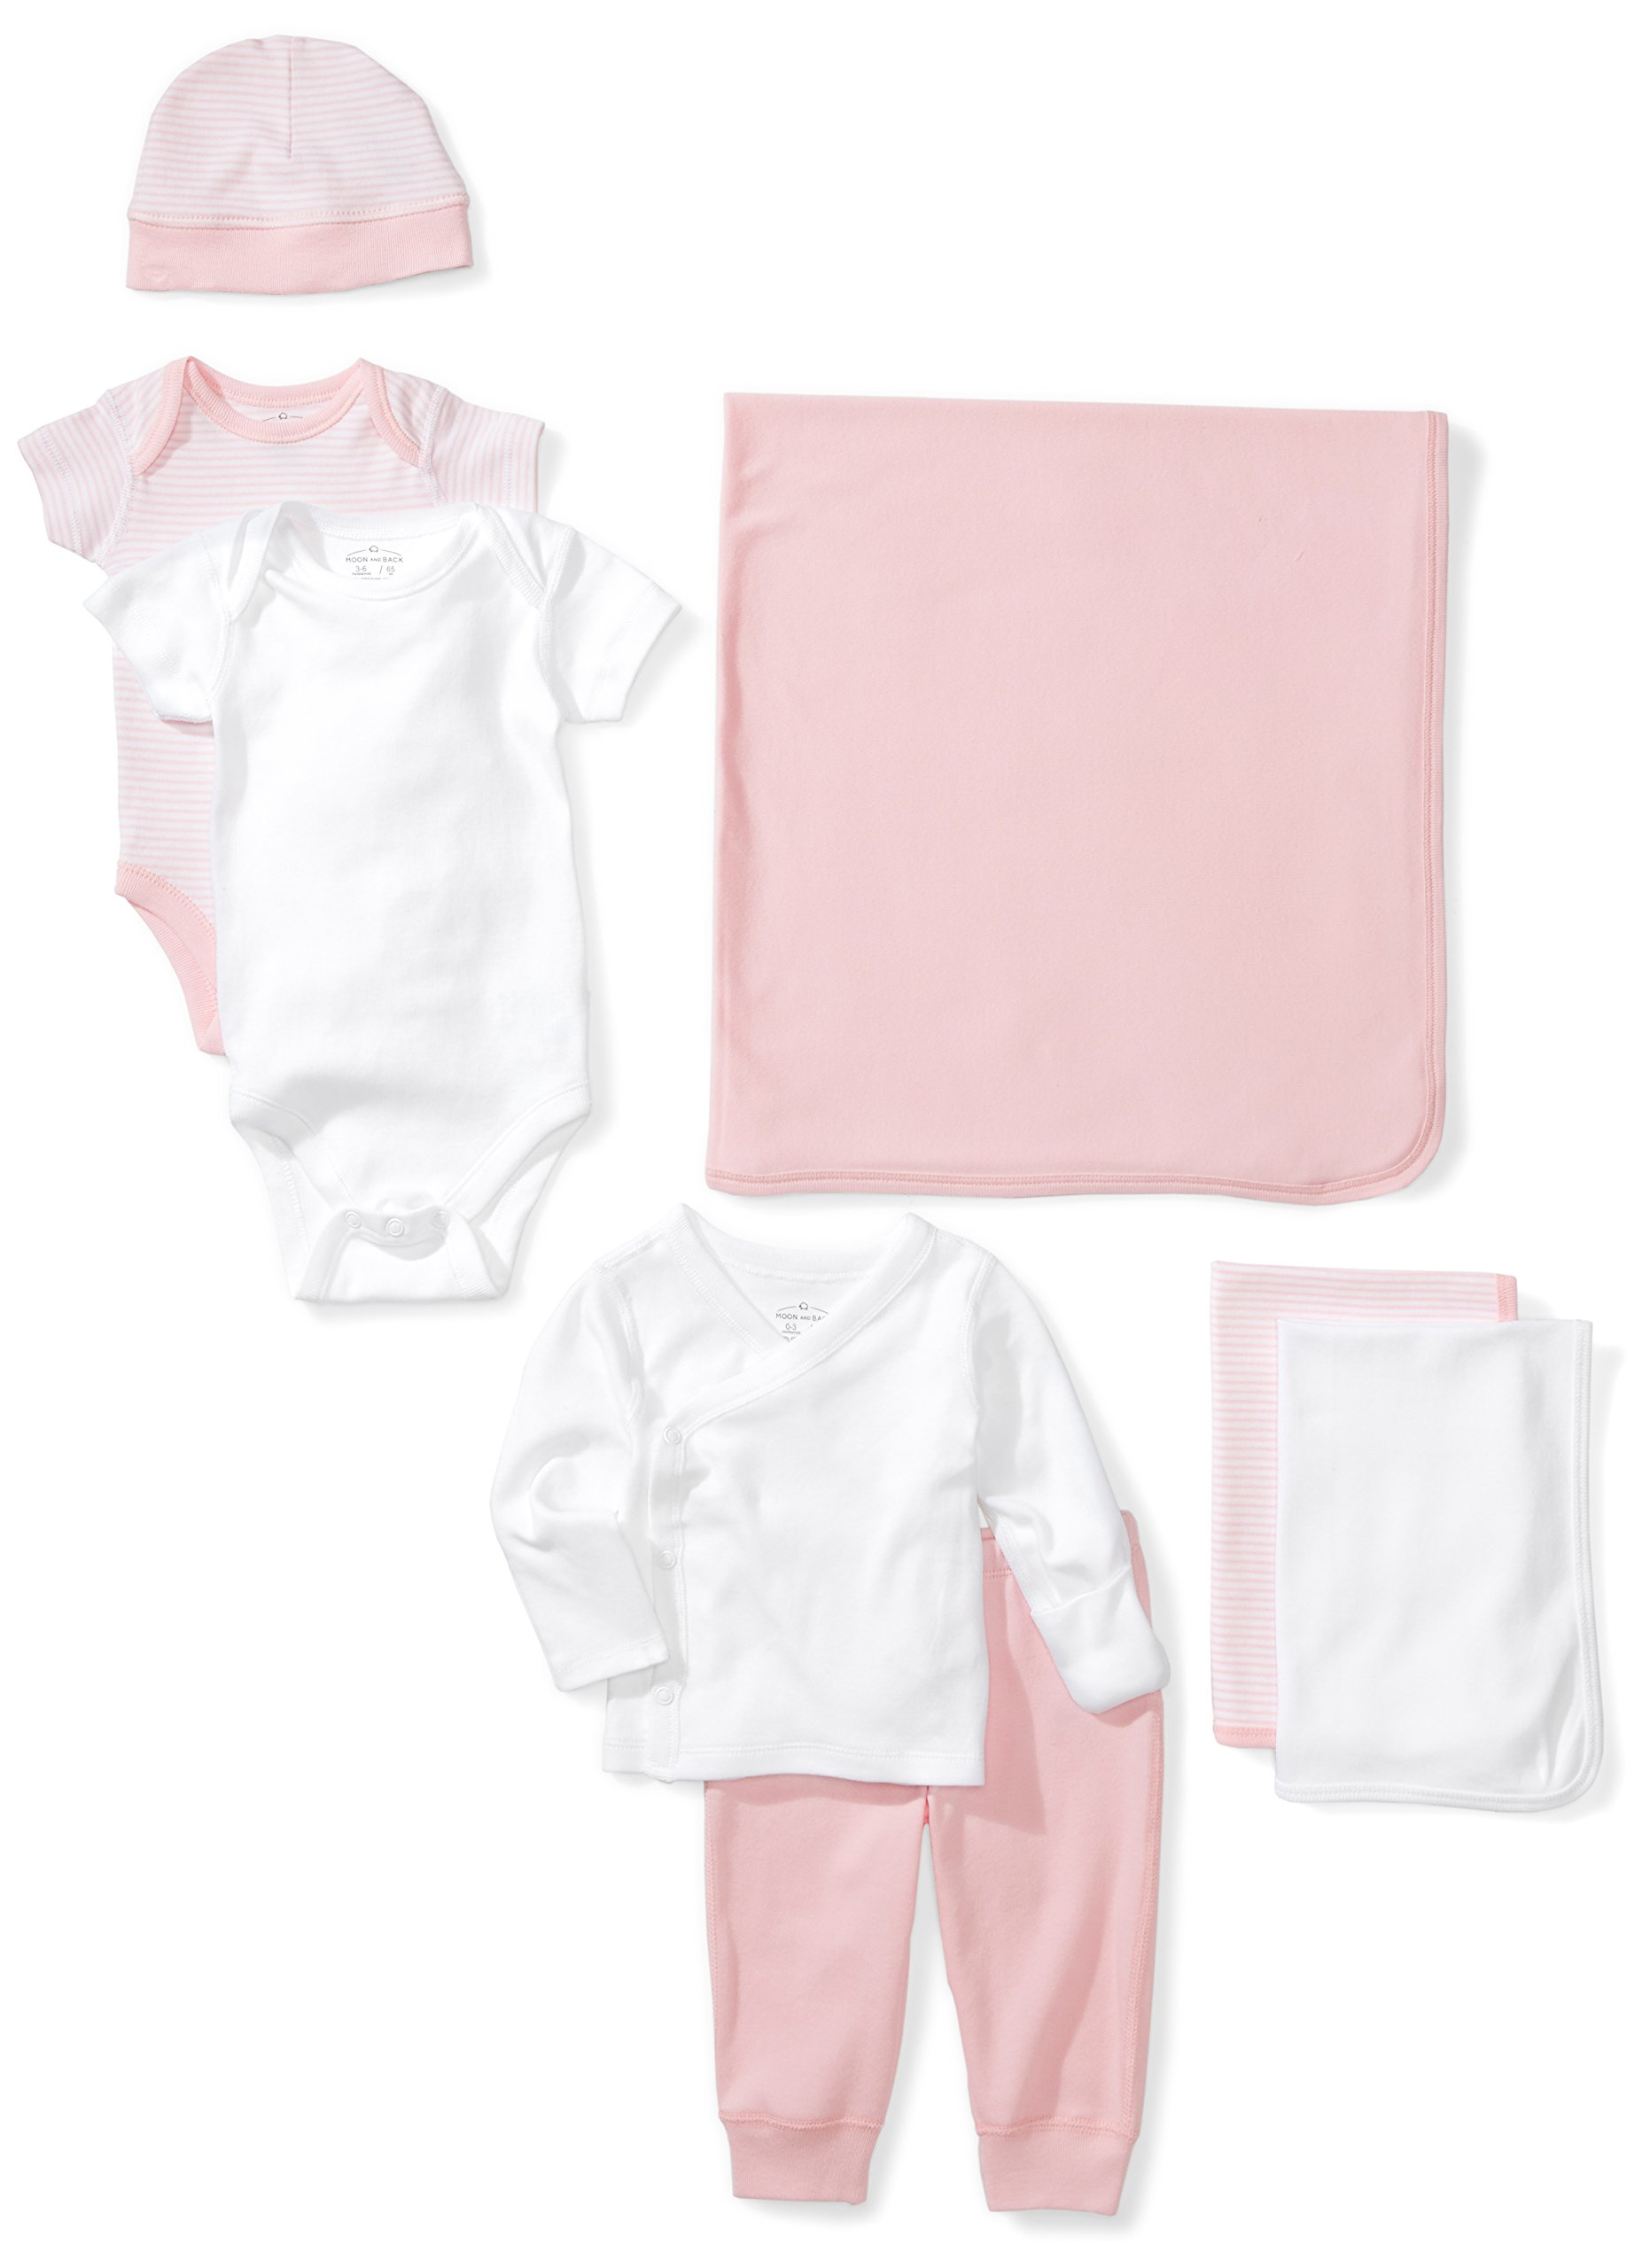 Moon and Back Baby 8-Piece Organic Playtime Gift Set, Pink Blush, 0-3 Months by Moon and Back